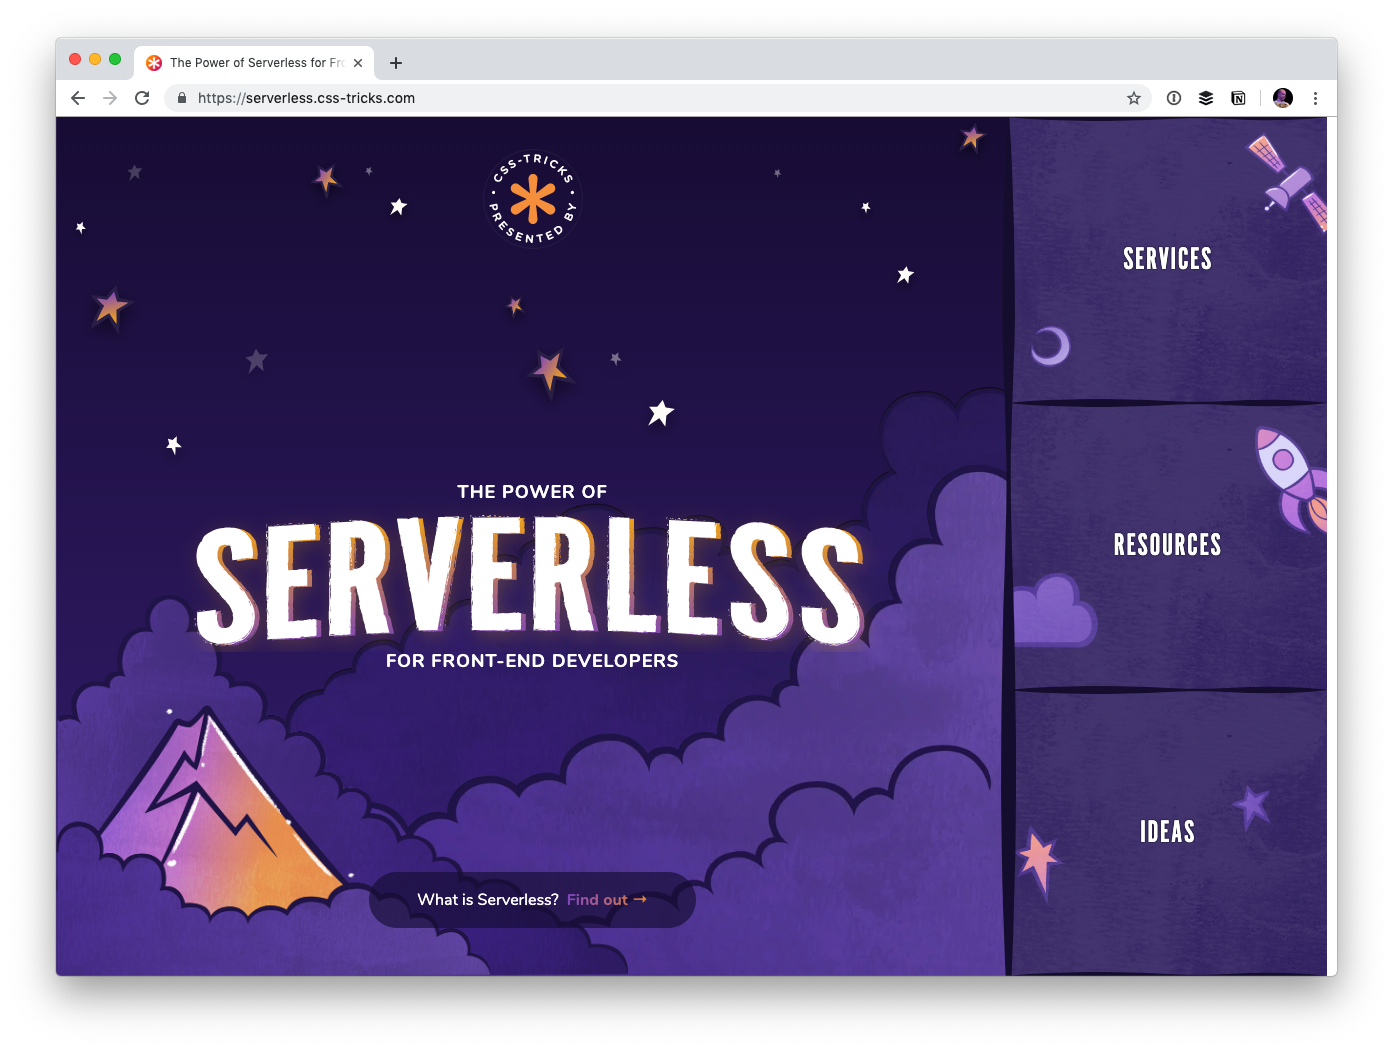 The Power of Serverless v2.0! (Now an Open-Source Gatsby Site Hosted on Netlify)